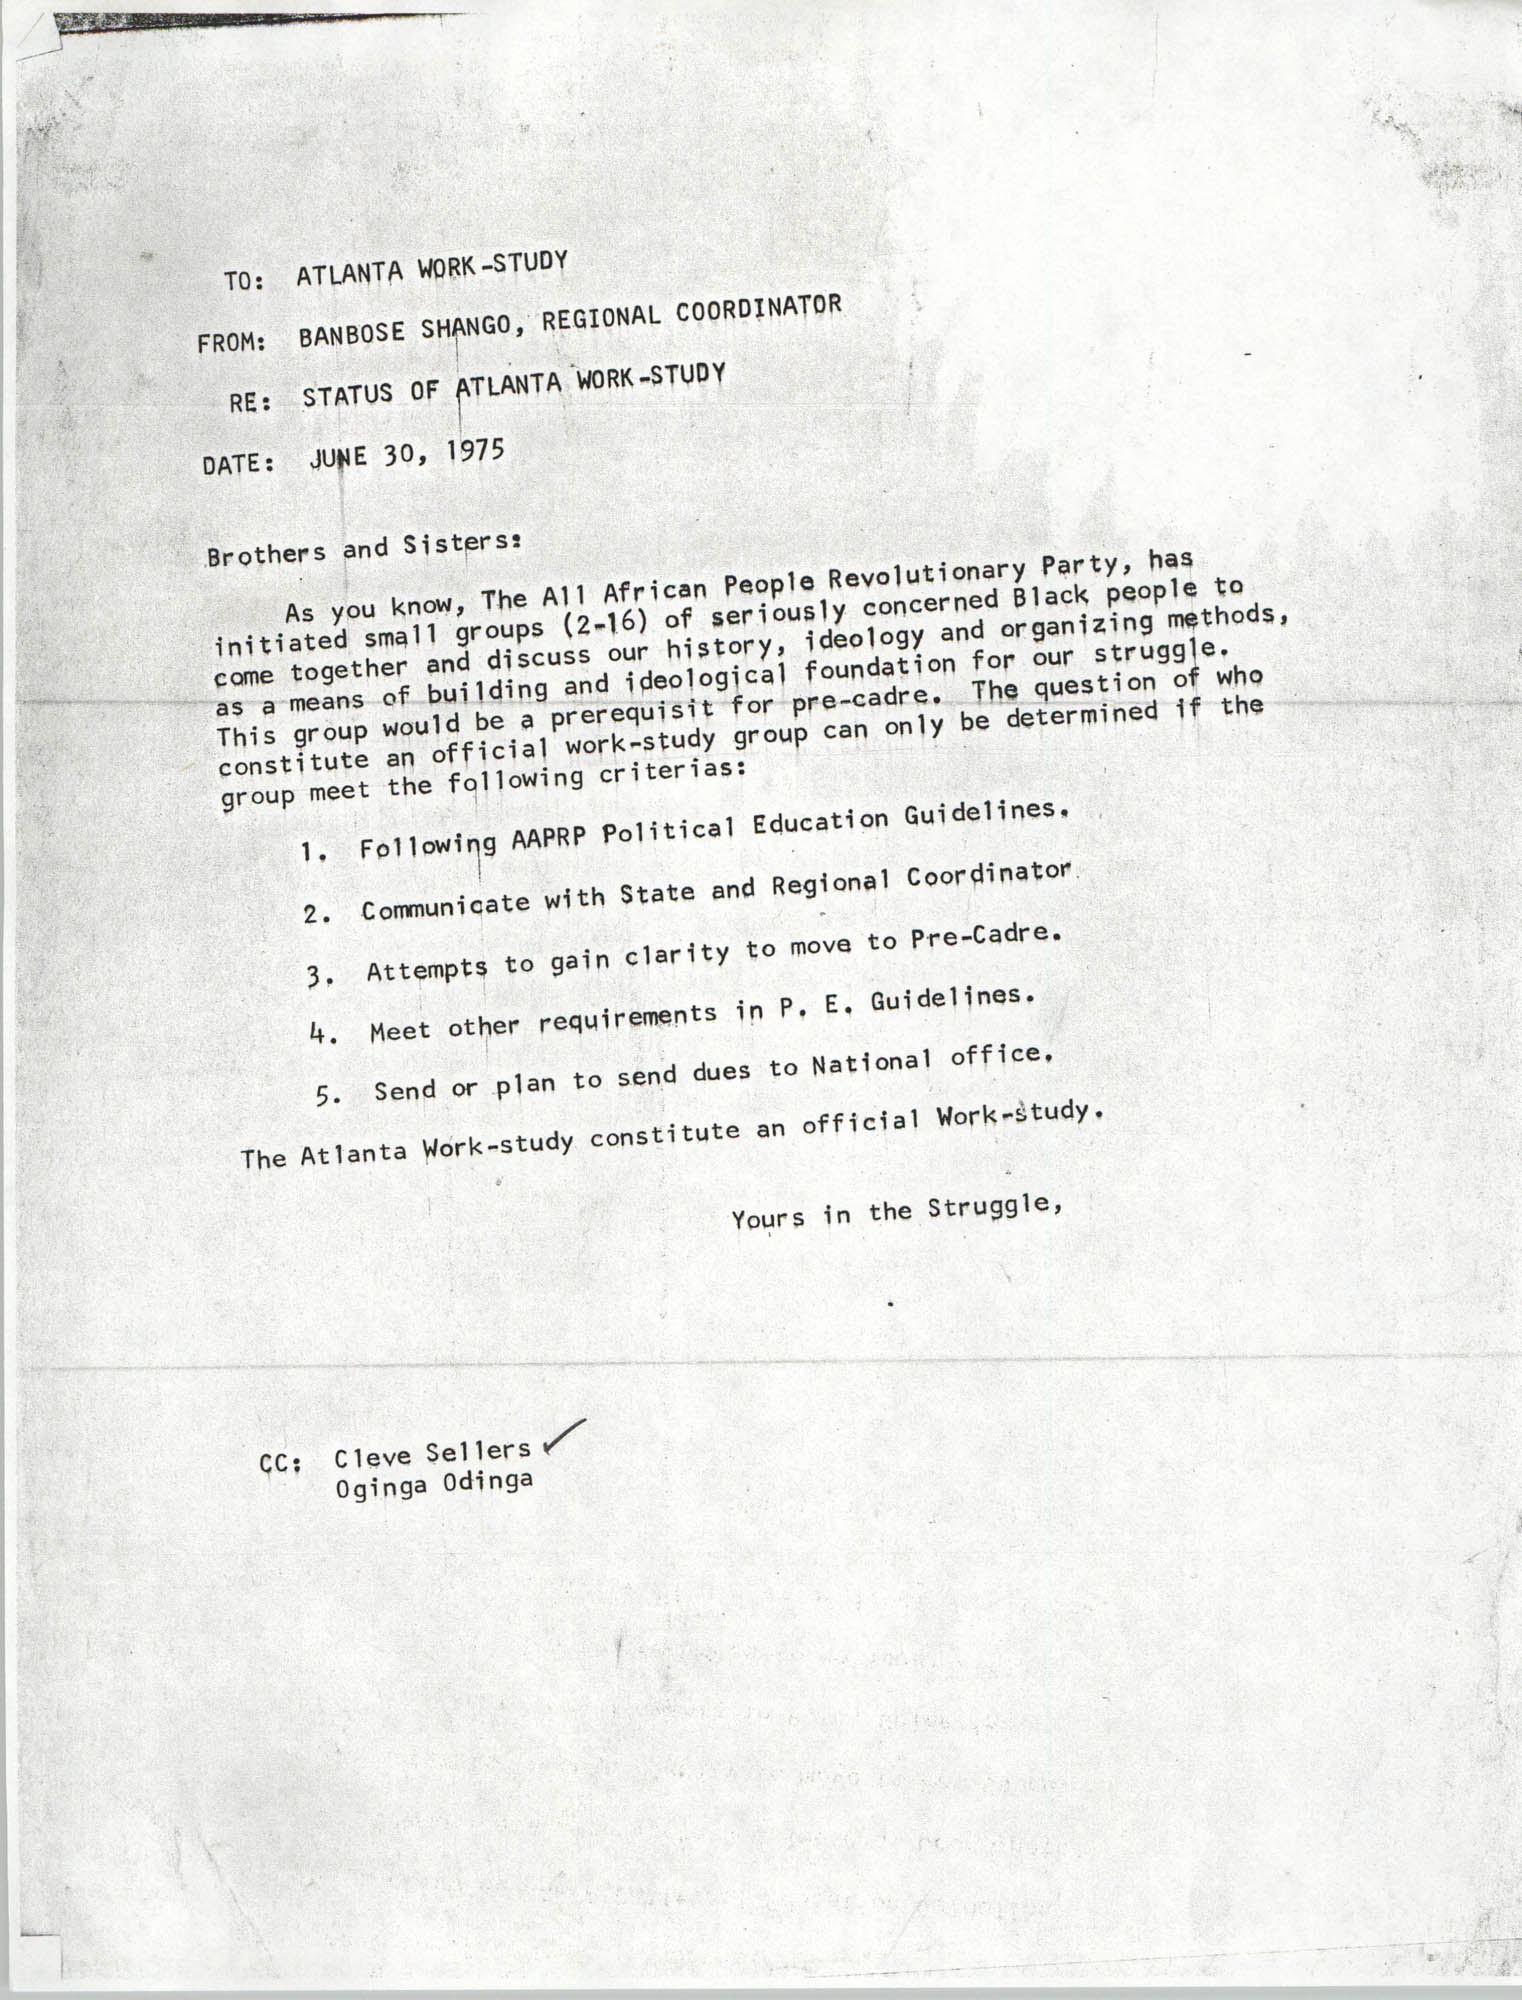 Memorandum from Banbose Shango, June 30, 1975